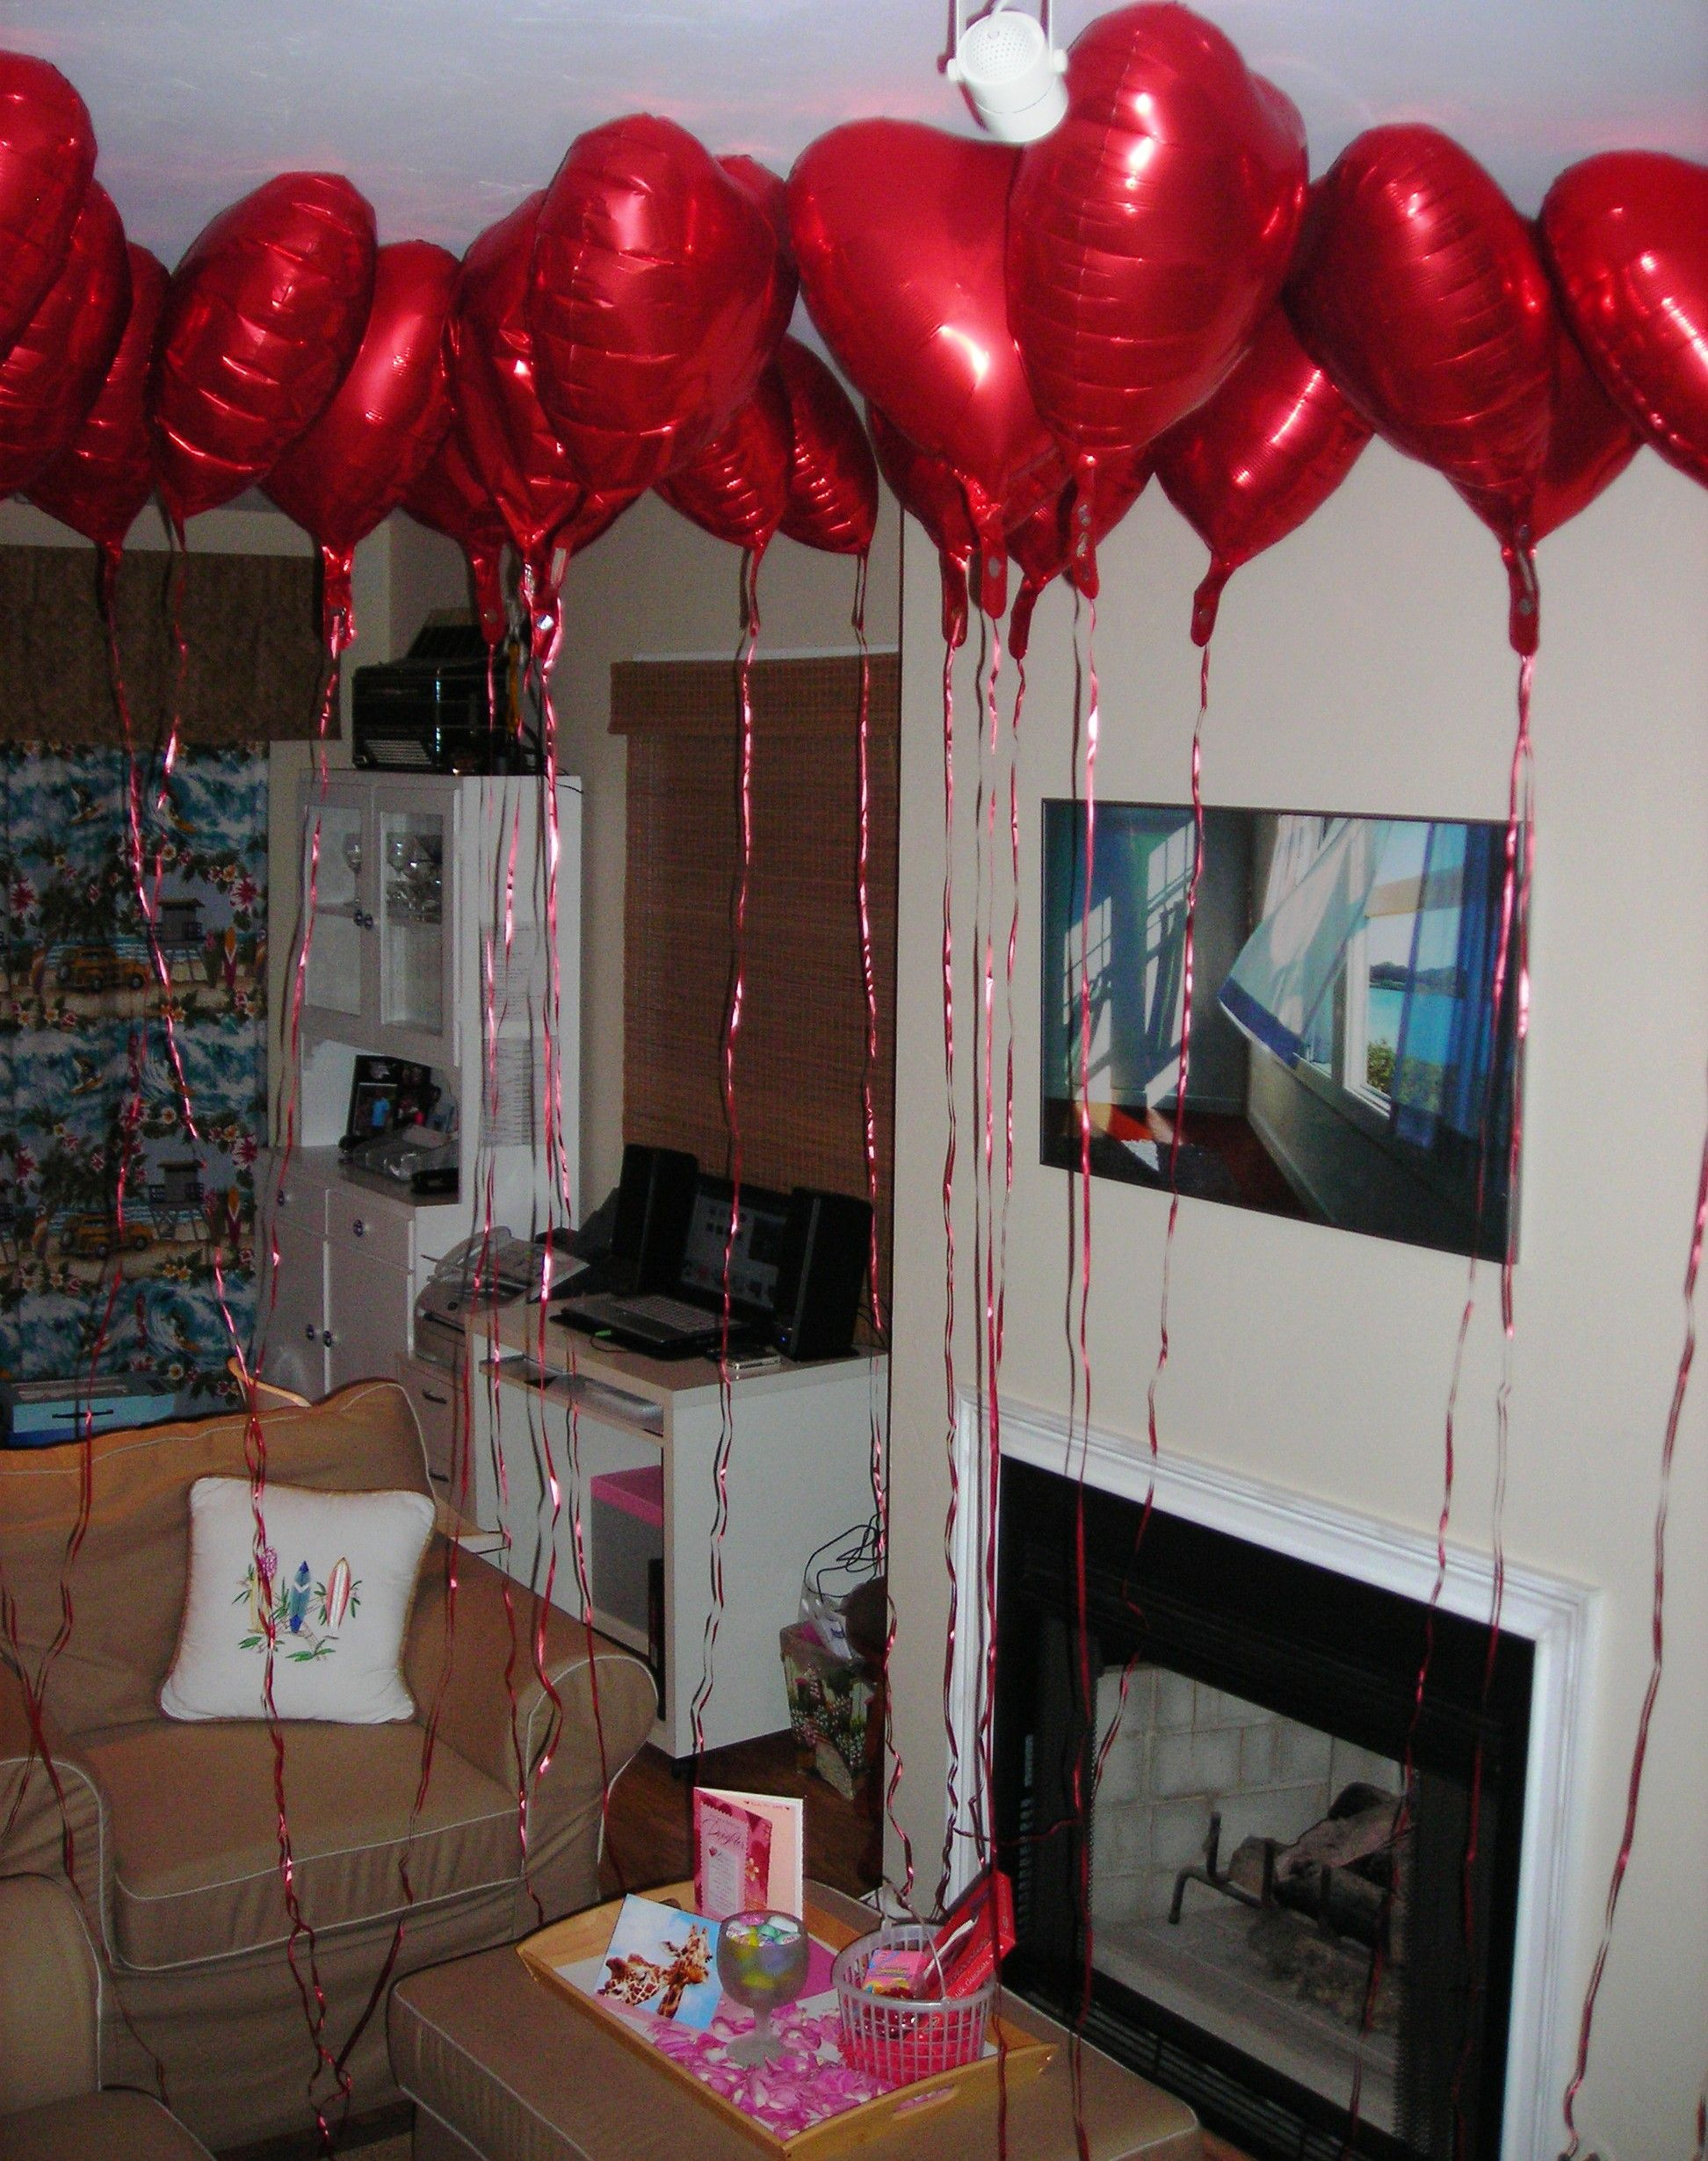 My boyfriend put a dozen red heart balloons & rose petals all over my bedroom for Valentine's Day! Great idea!!